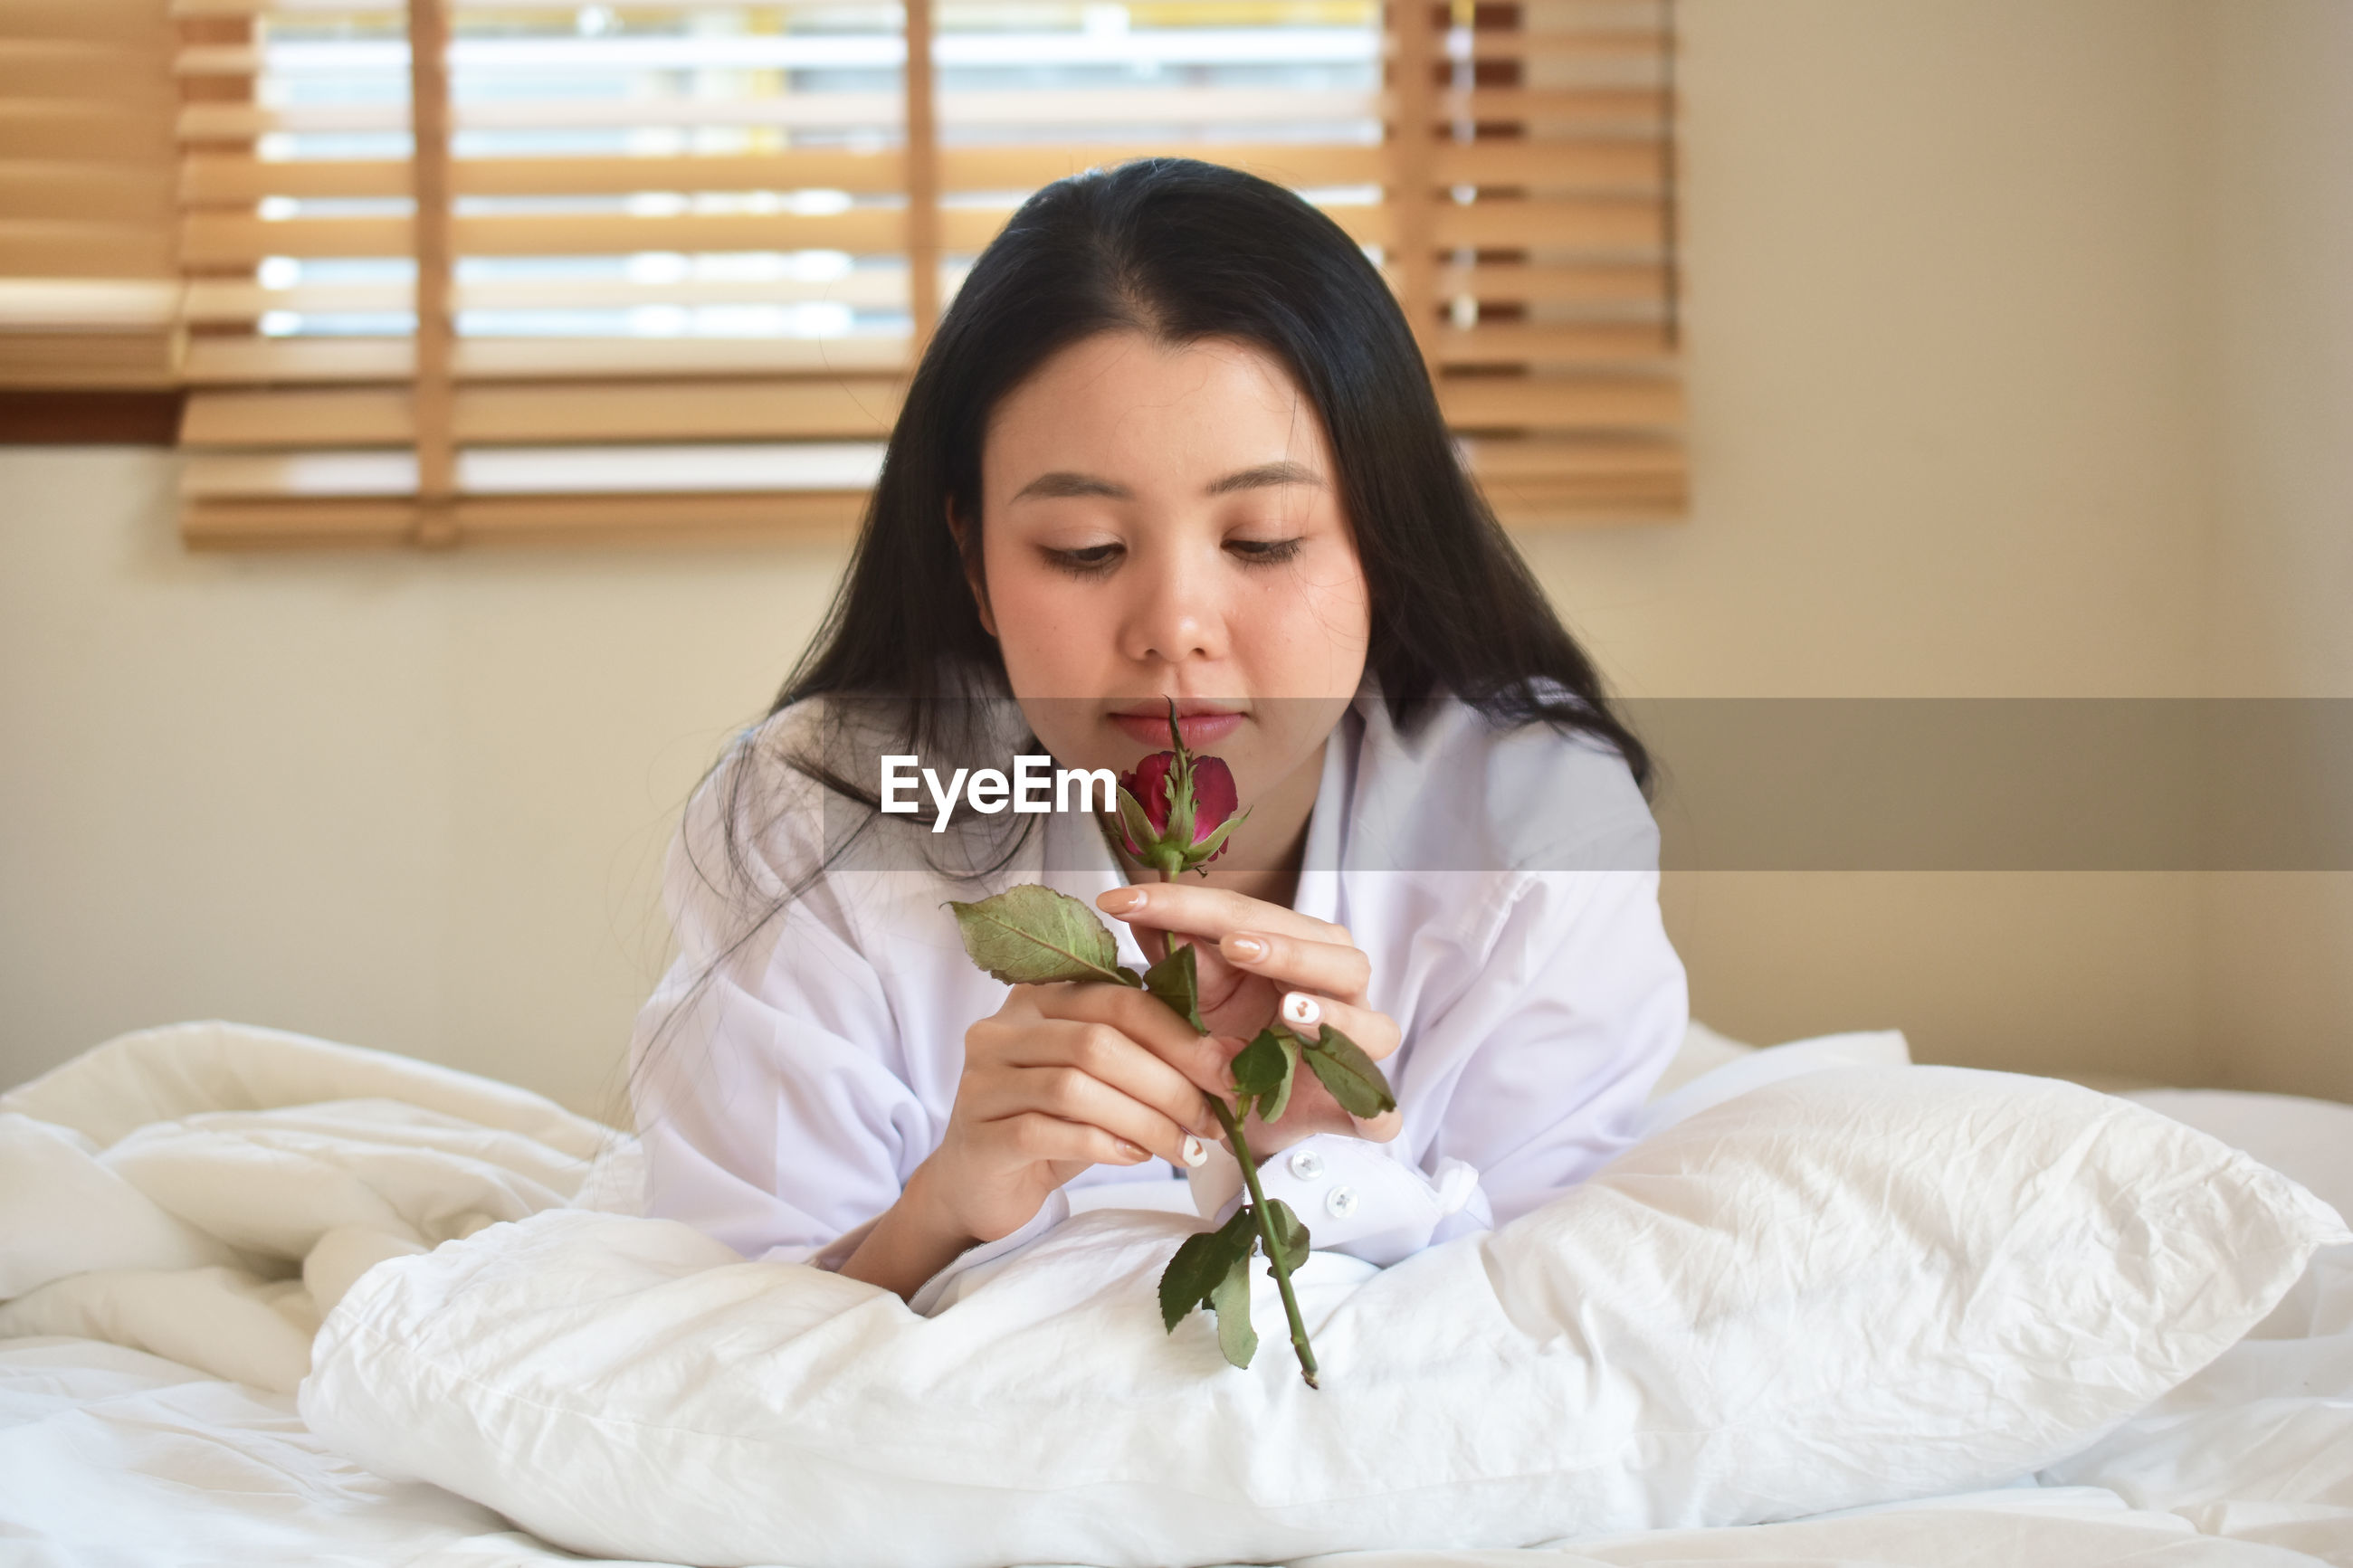 Young woman holding rose while relaxing on bed at home